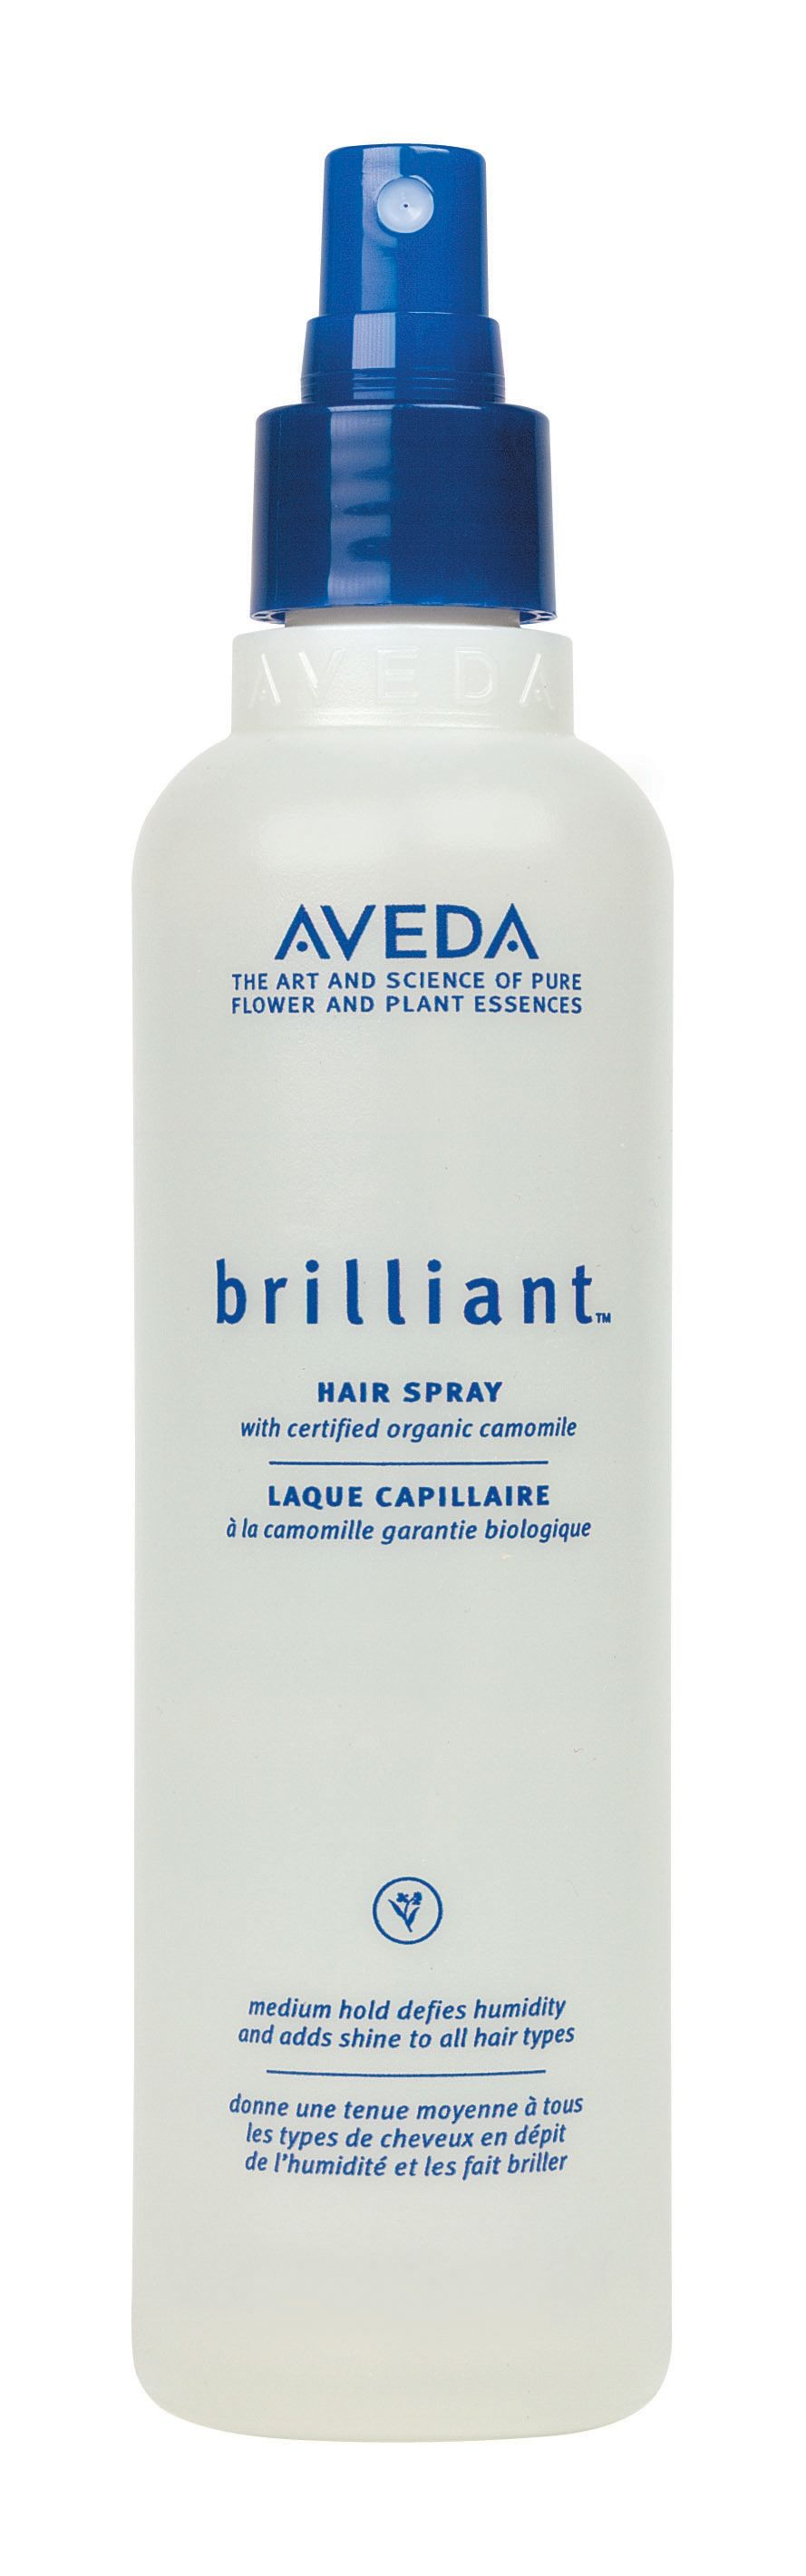 Brilliant Hair Spray 50ml